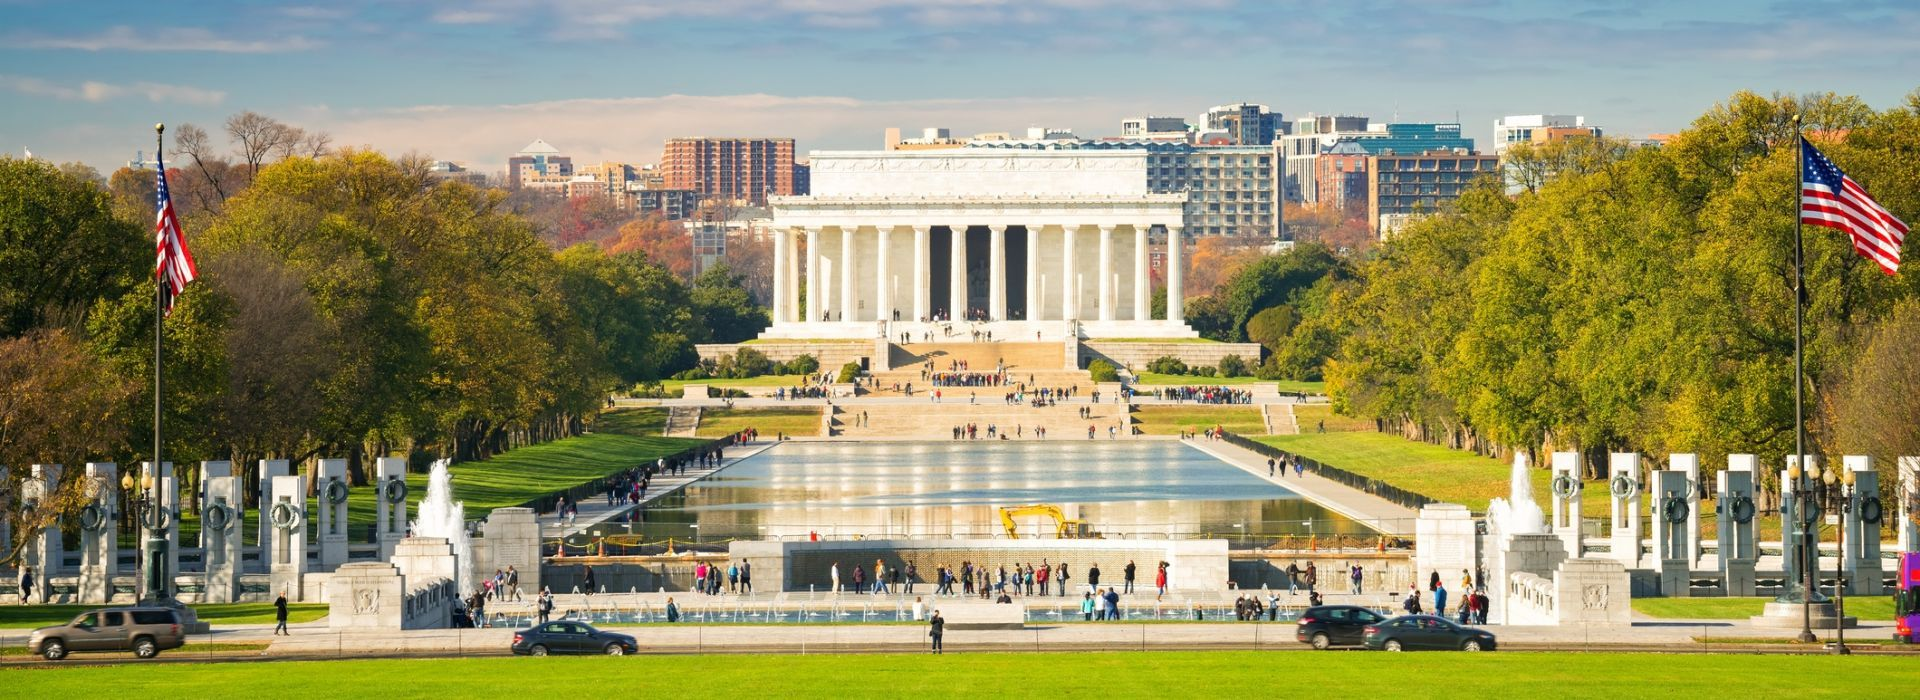 Sightseeing, attractions, culture and history Tours in USA